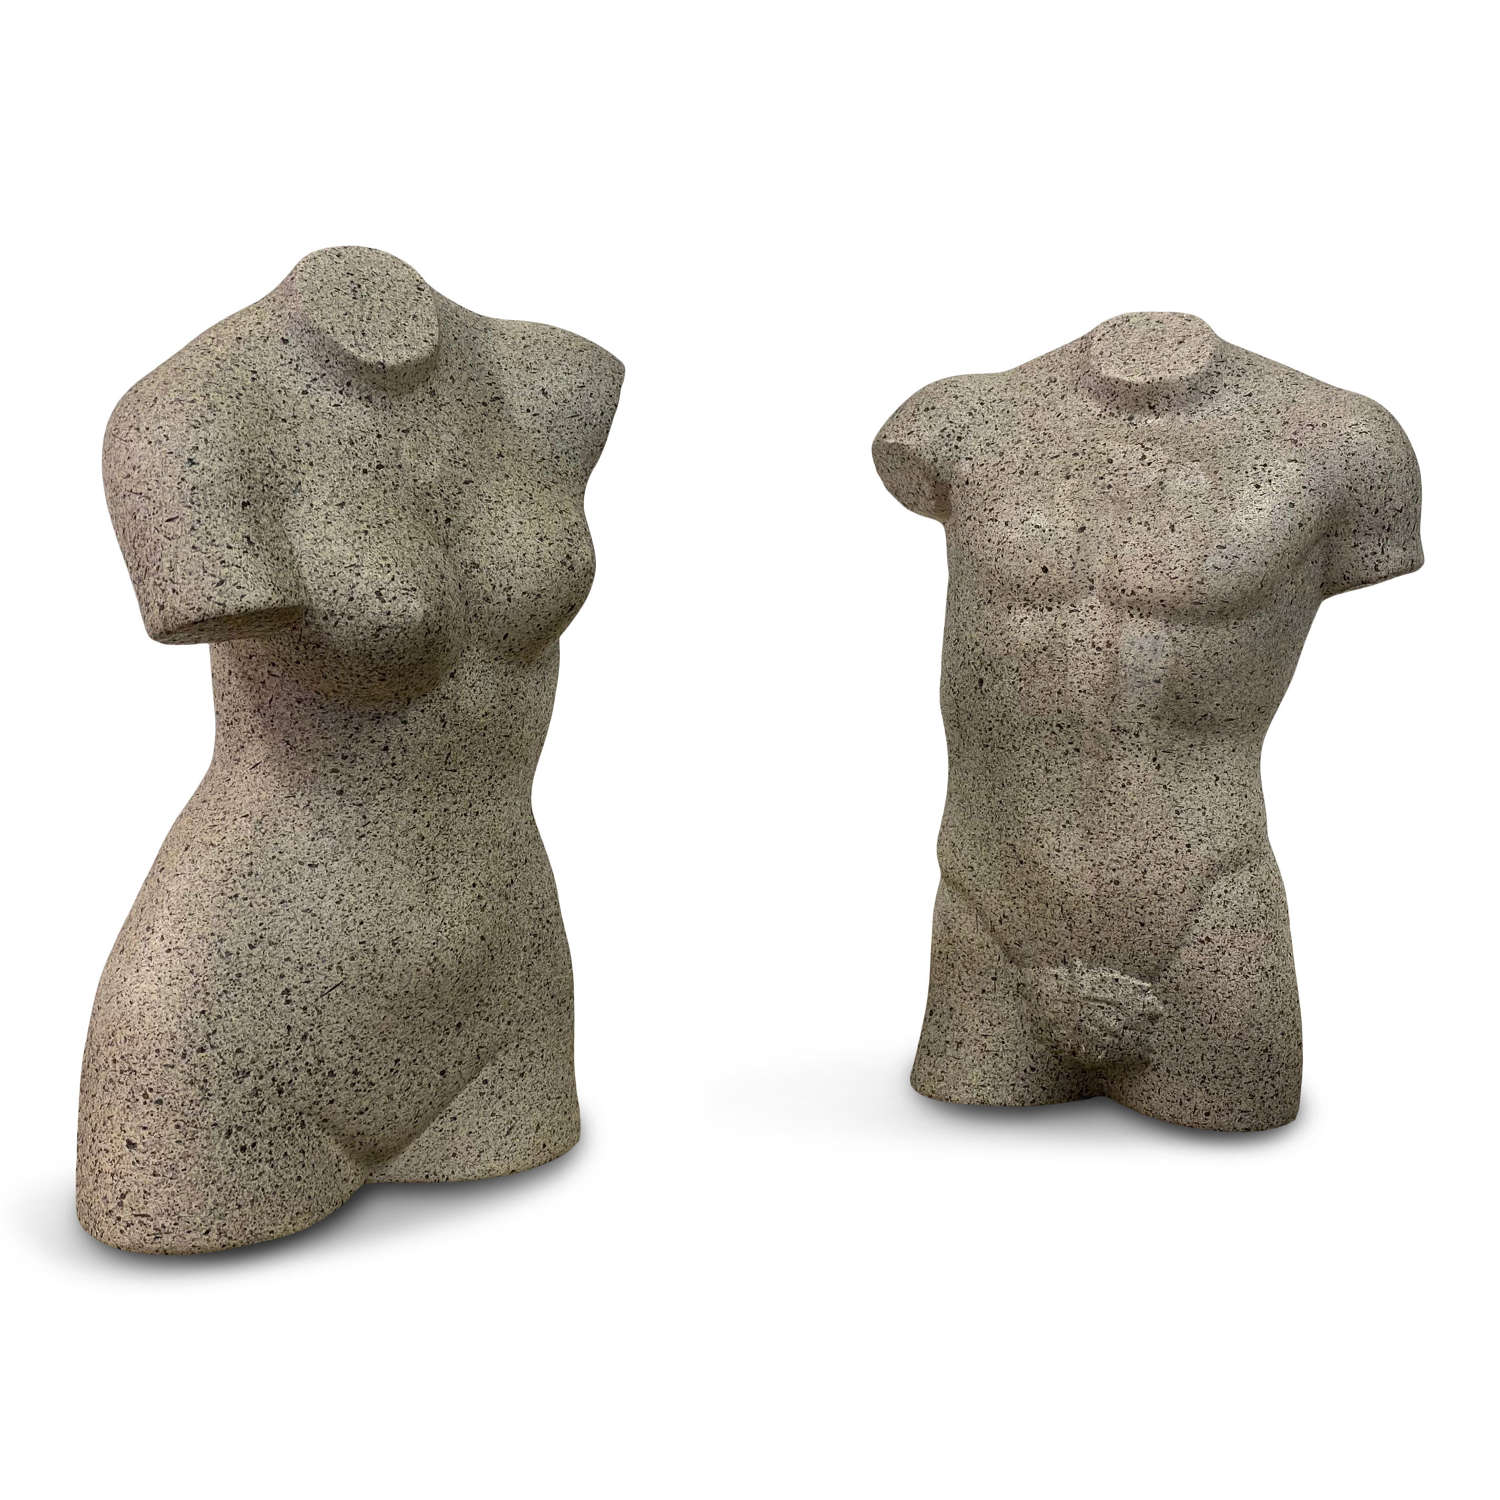 A Pair of Ceramic Torsos